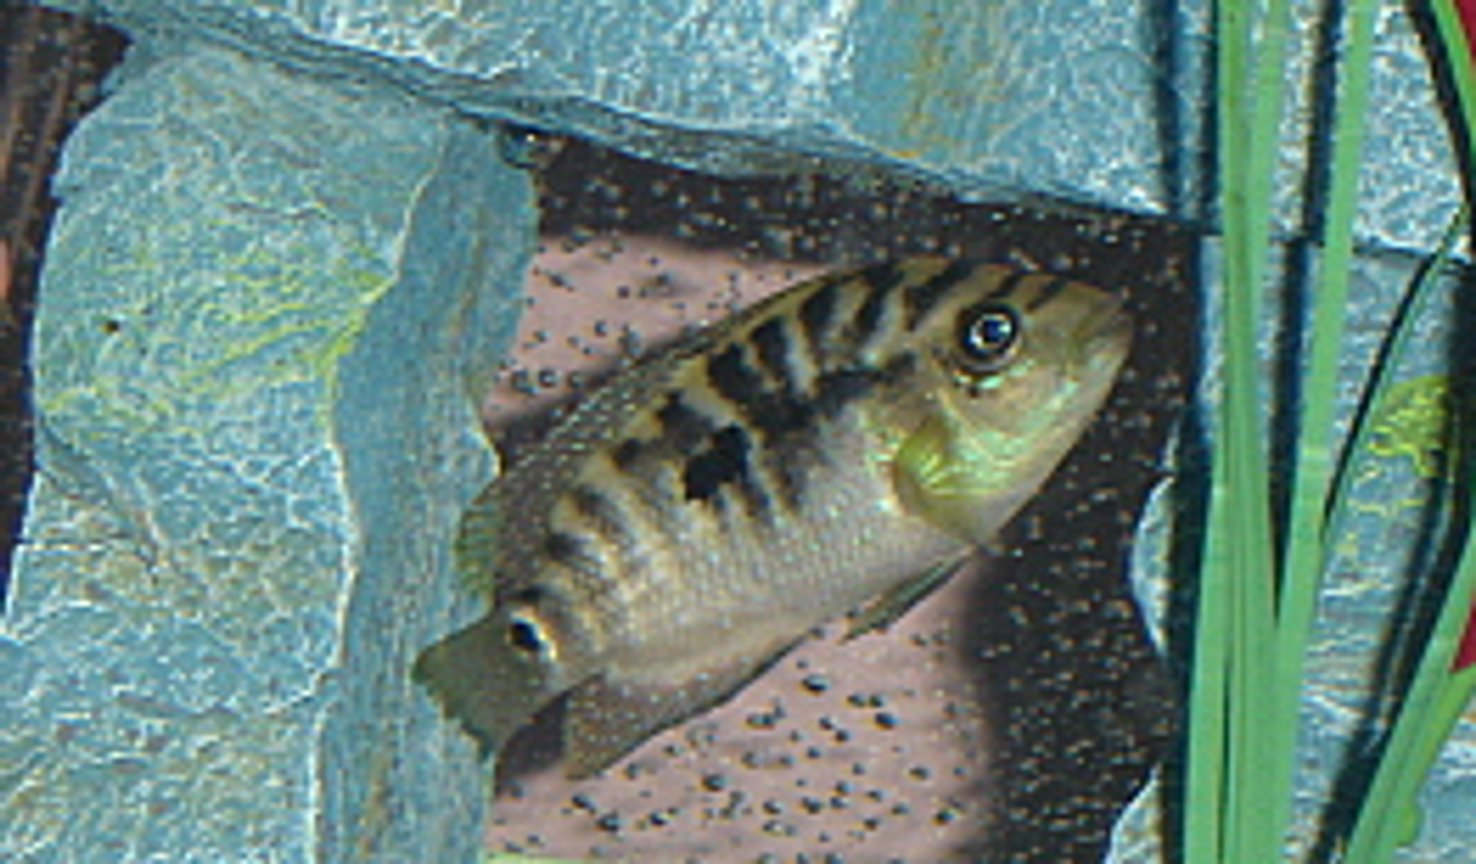 freshwater fish - nandopsis octofasciatum - jack dempsey stocking in 55 gallons tank - Immature Jack Dempsey